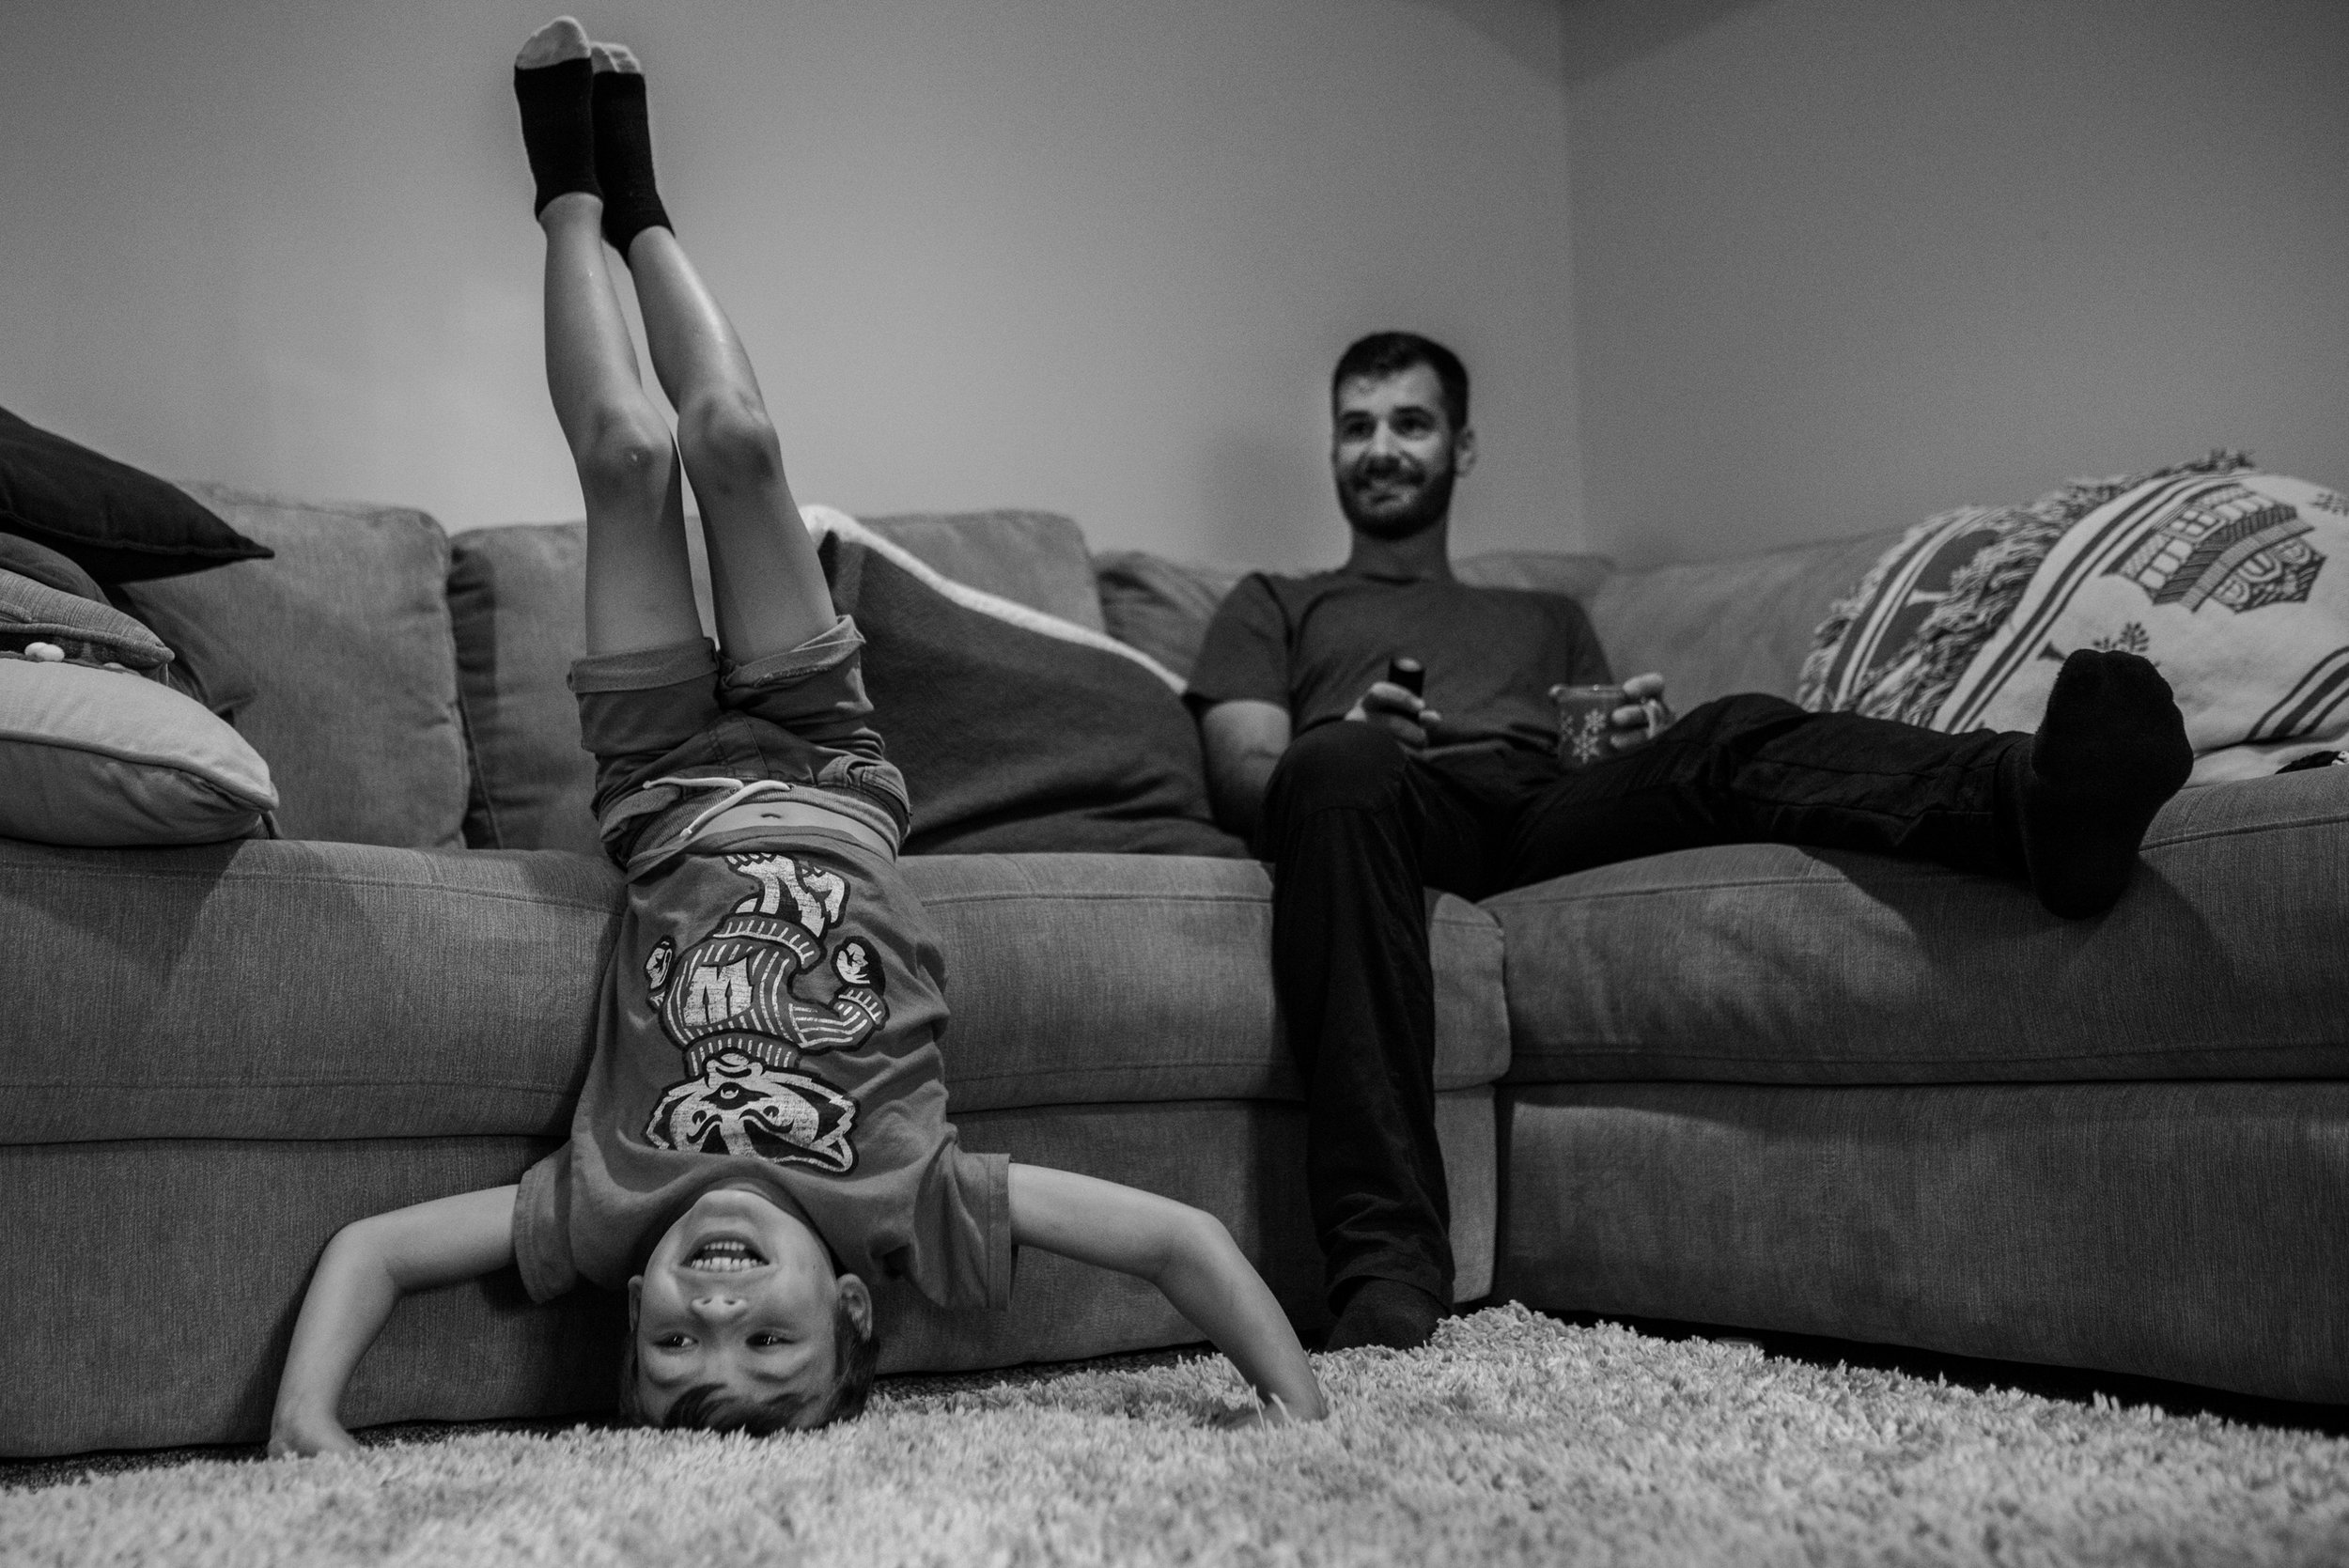 Son doing headstand in front of dad on couch during Milwaukee Photography session